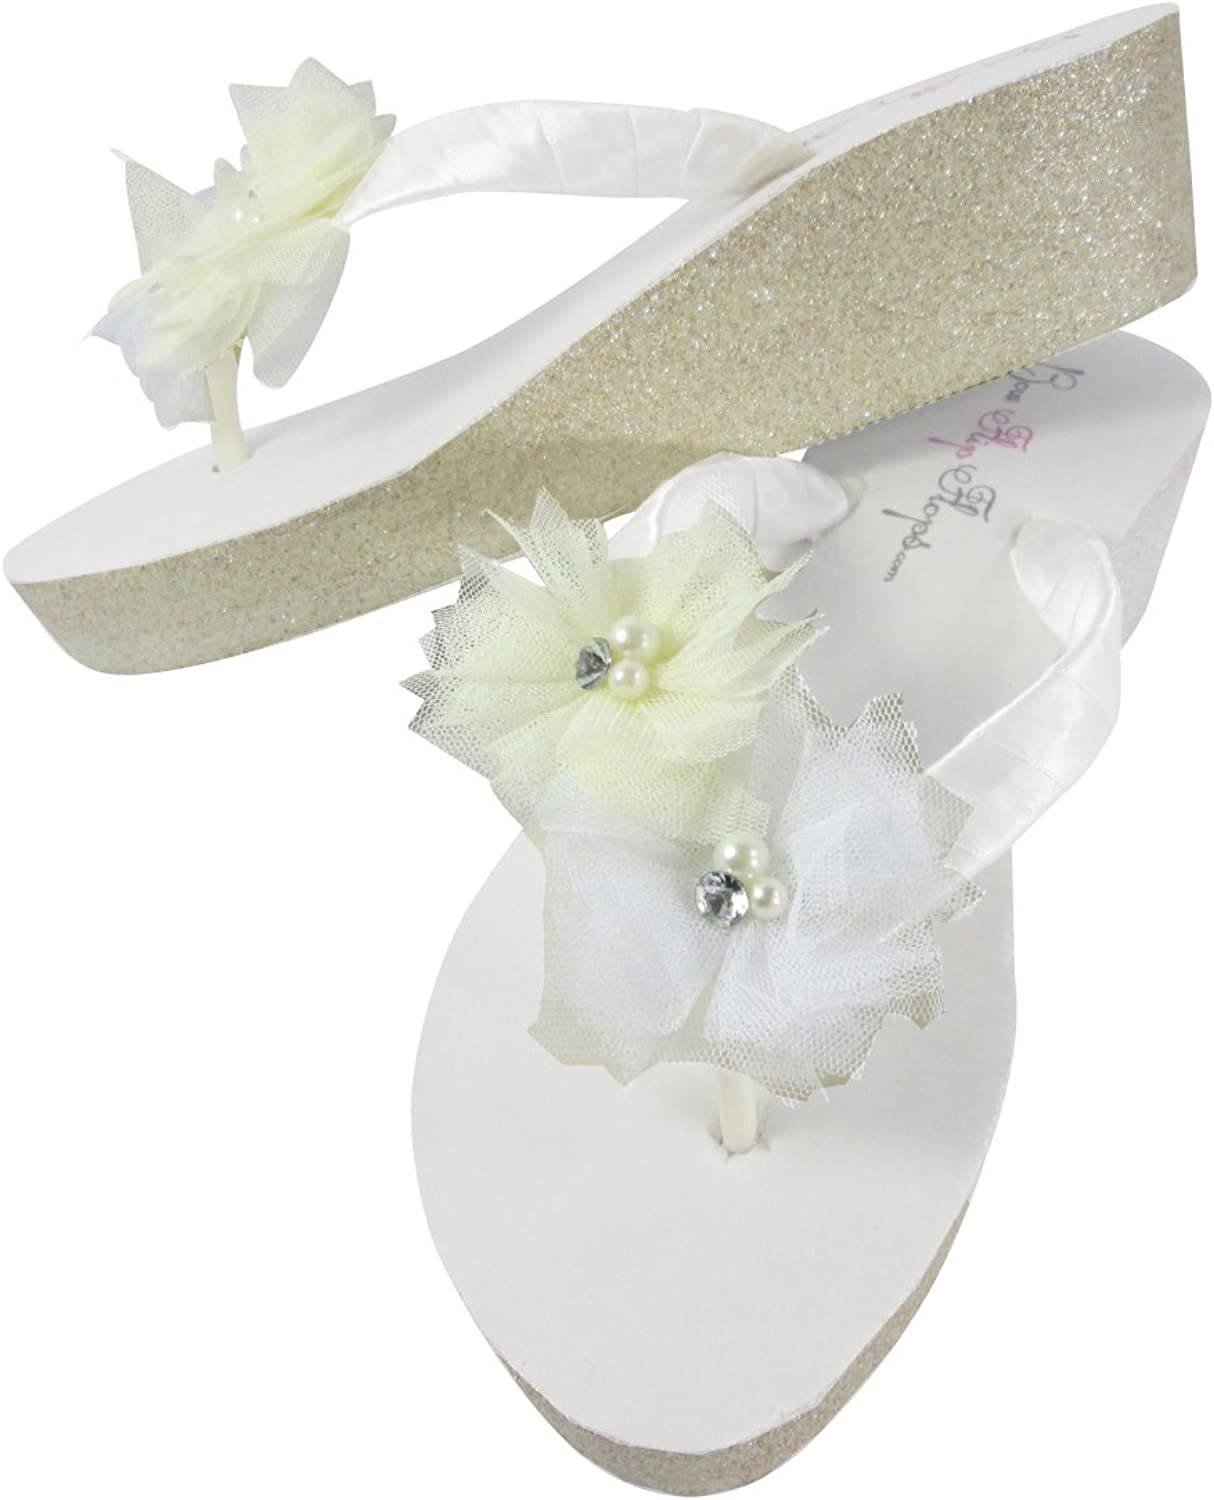 Bridal Flip Flops with Tulle Flowers, Champagne Glitter Wedge 2 inch Heel